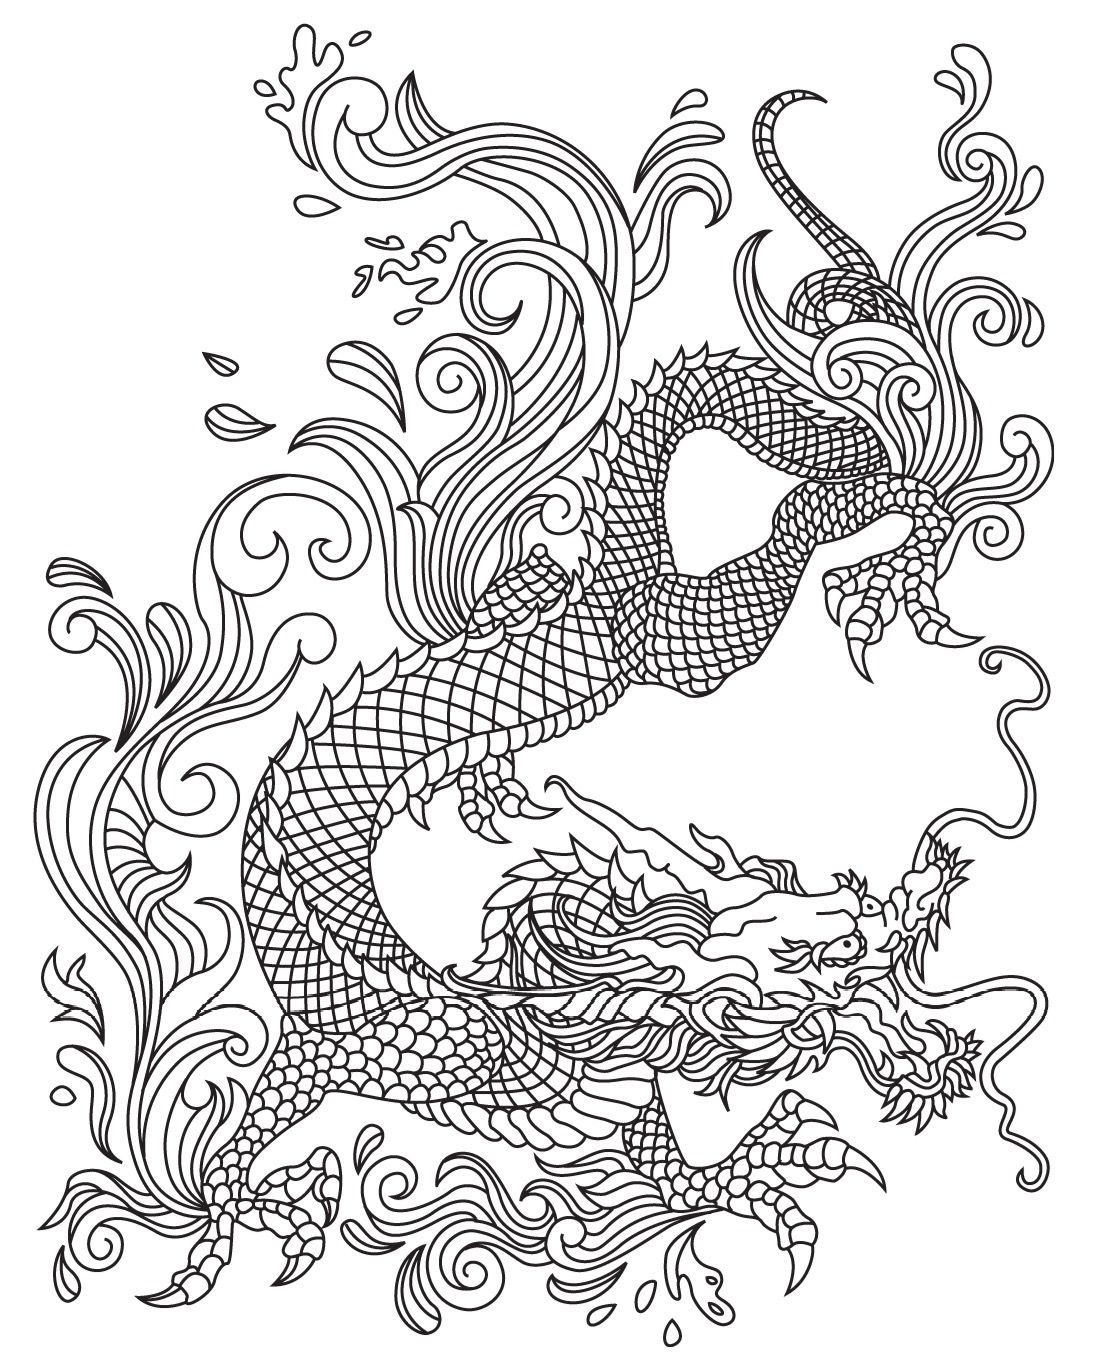 Japanese Dragon Colorish Coloring Book For Adults Mandala Relax By Goodsofttech Dragon Coloring Page Snake Coloring Pages Coloring Books